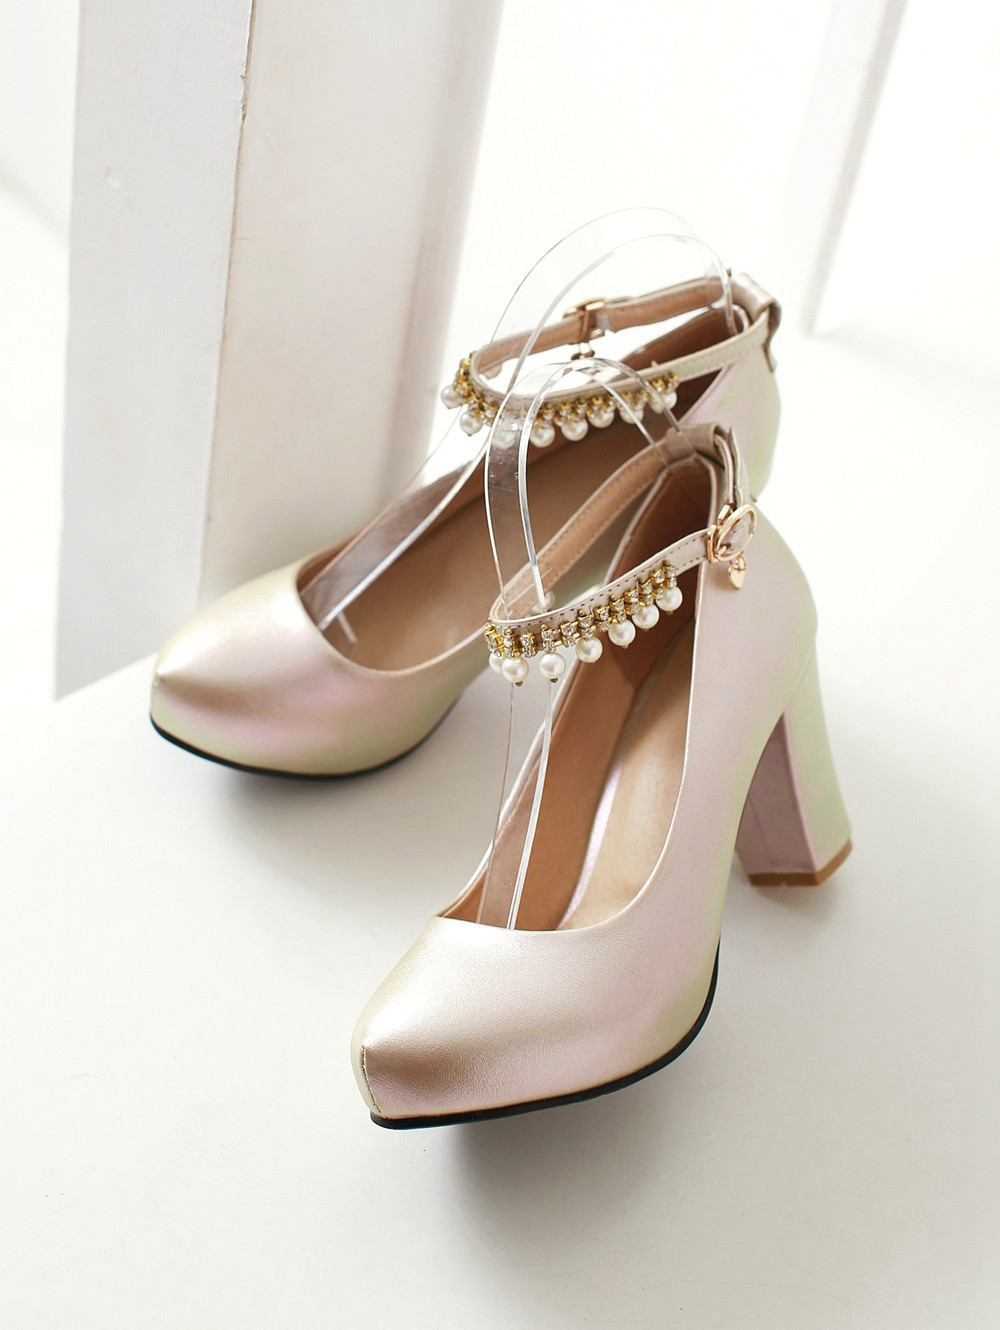 2017 Chunky High Heeled Pink Bridal Wedding Shoes Beaded White Female Buckle Elegant Pumps Silver Gold42